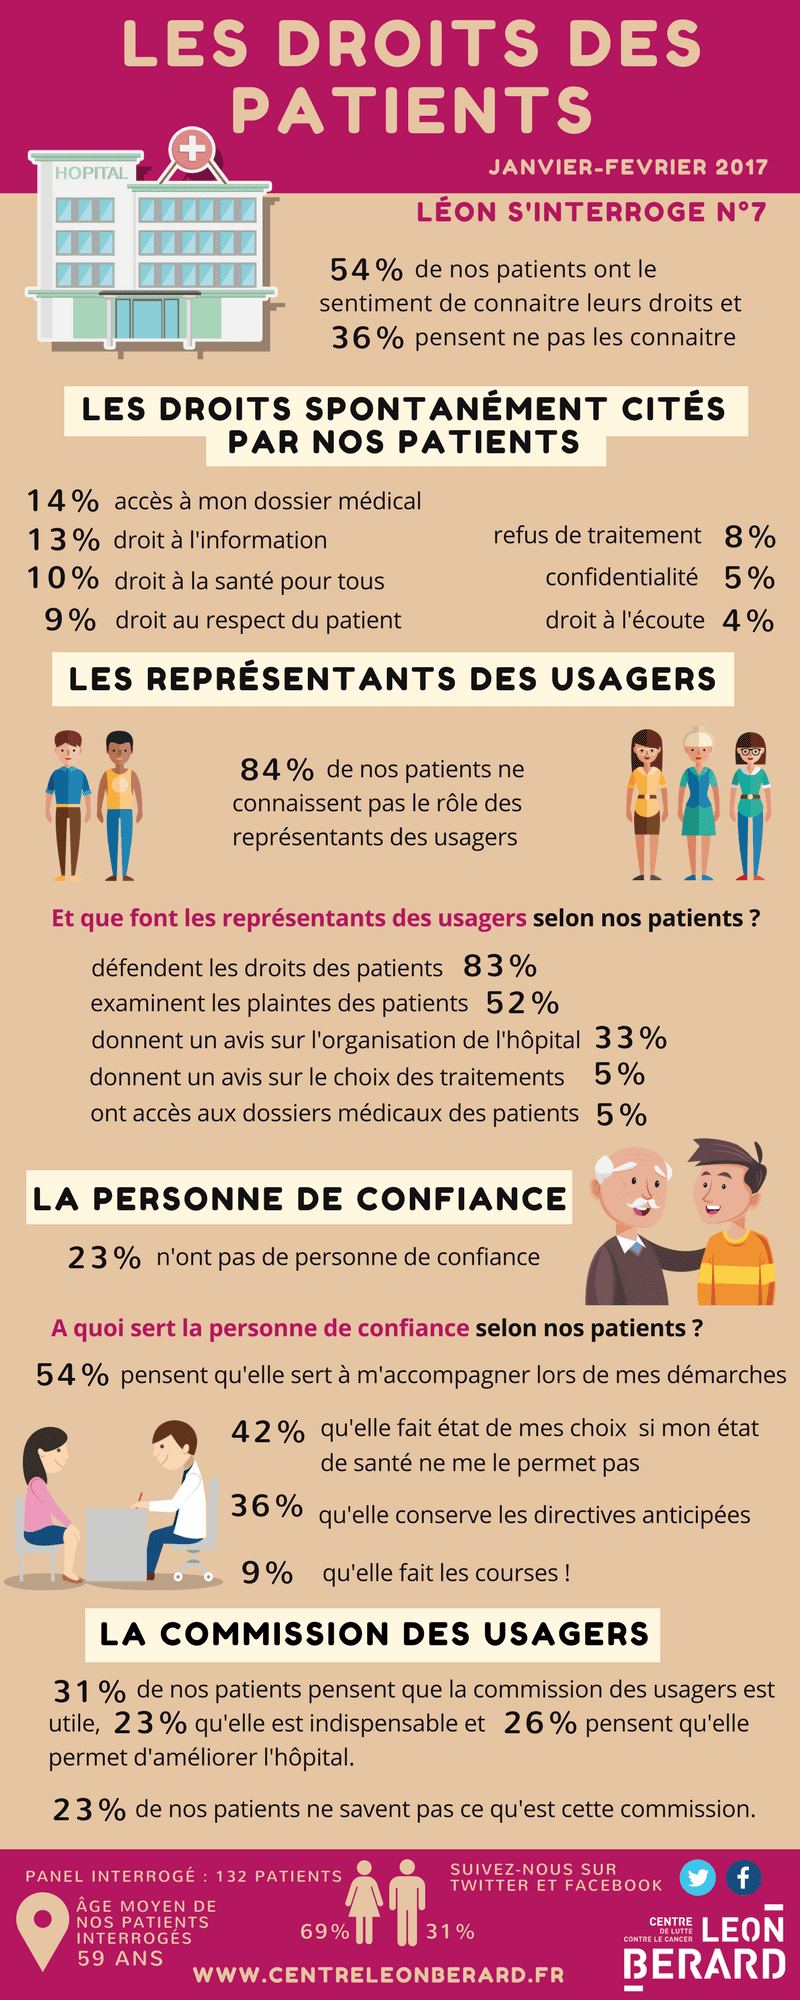 Infographie Leon s'interroge - Le droit des patients